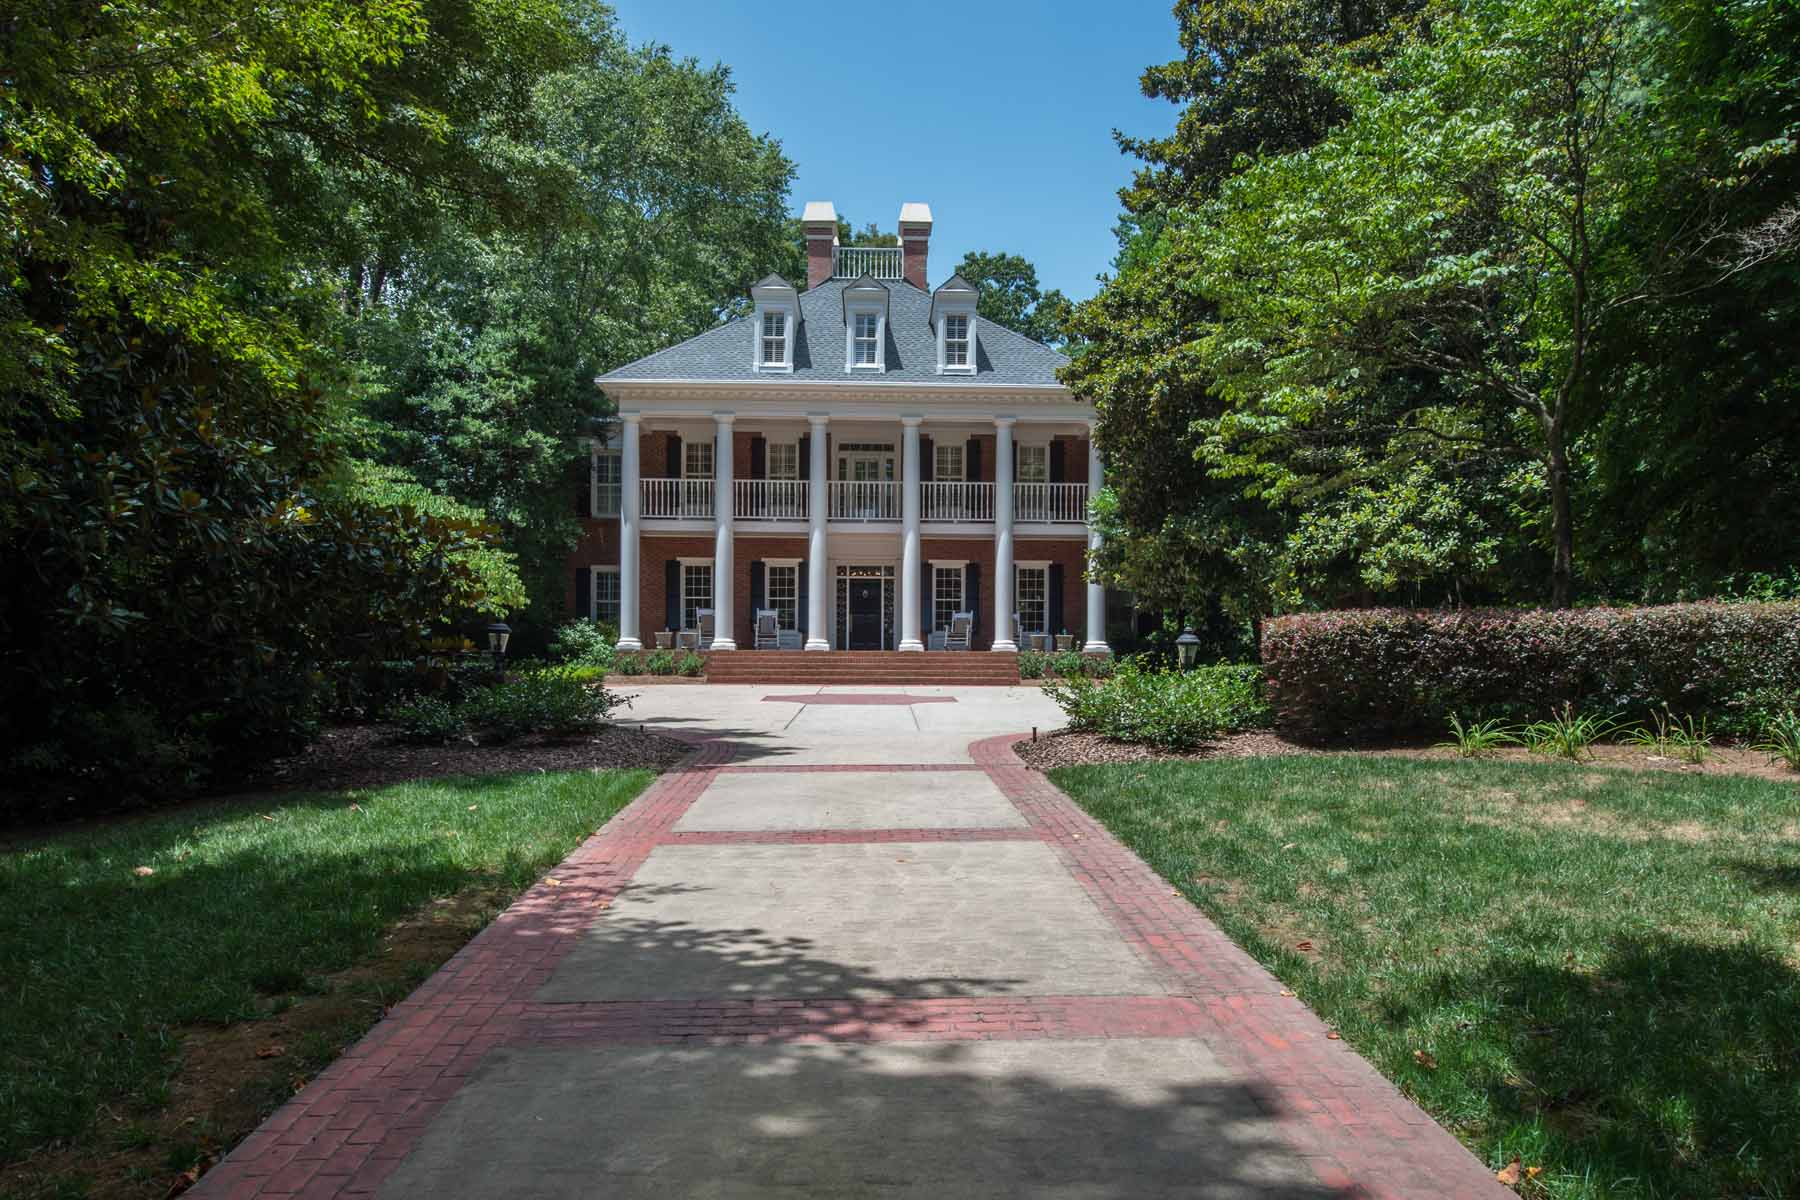 Tek Ailelik Ev için Satış at Southern Greek Revival with over 2 acres offers serene estate setting. 1255 Mount Paran Road NW Buckhead, Atlanta, Georgia 30327 Amerika Birleşik Devletleri